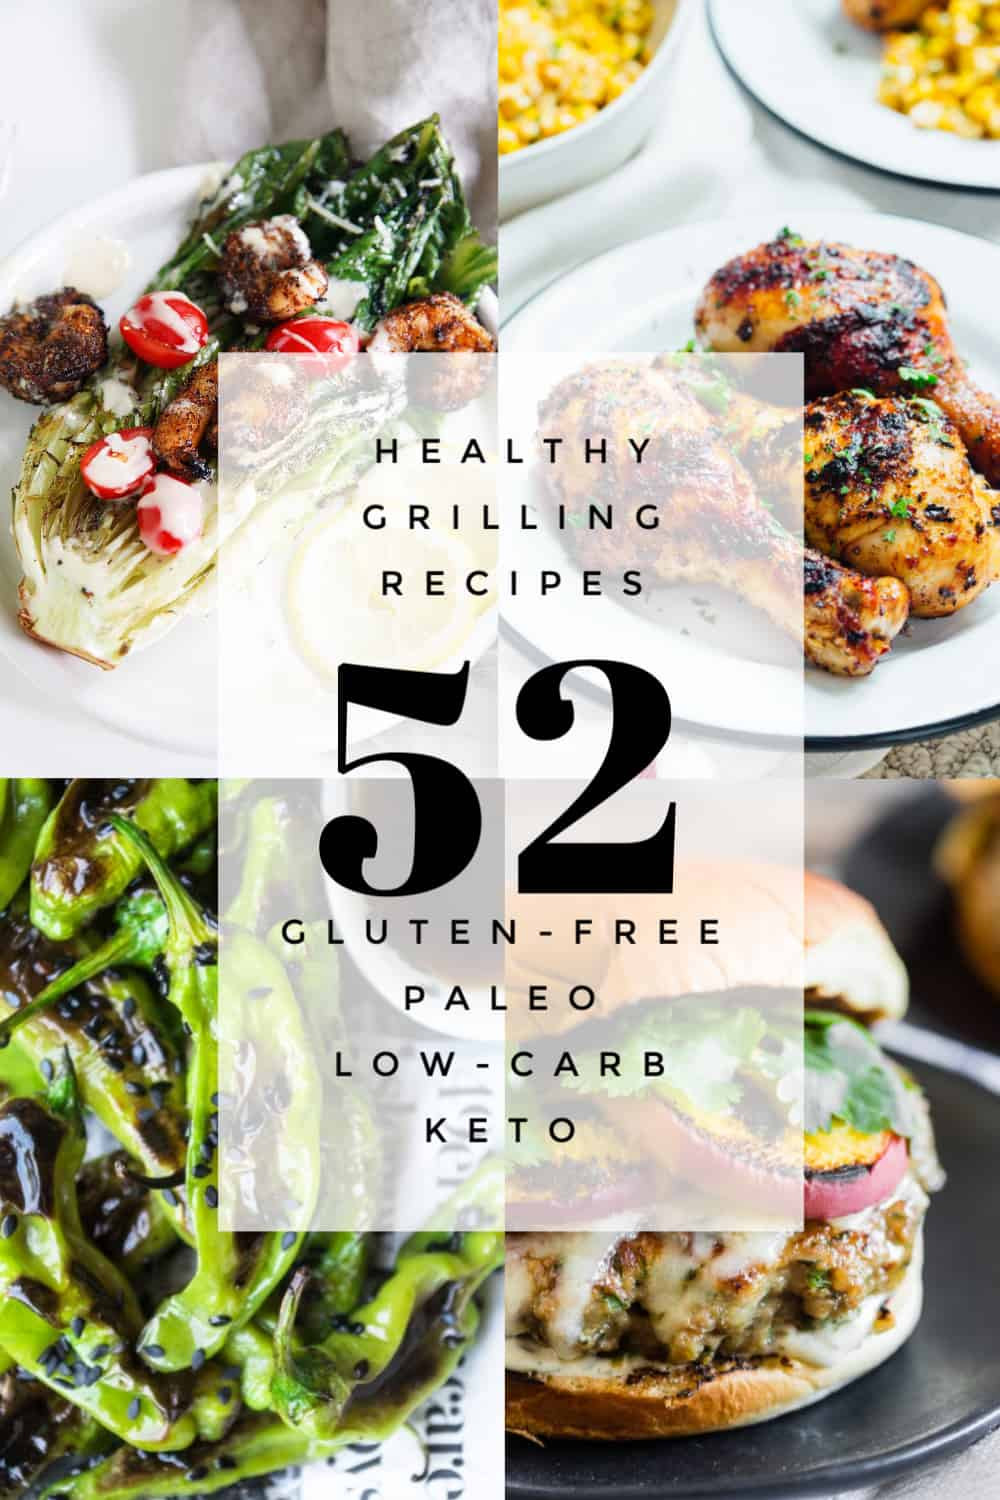 52 Healthy Grilling Recipes for grilling season